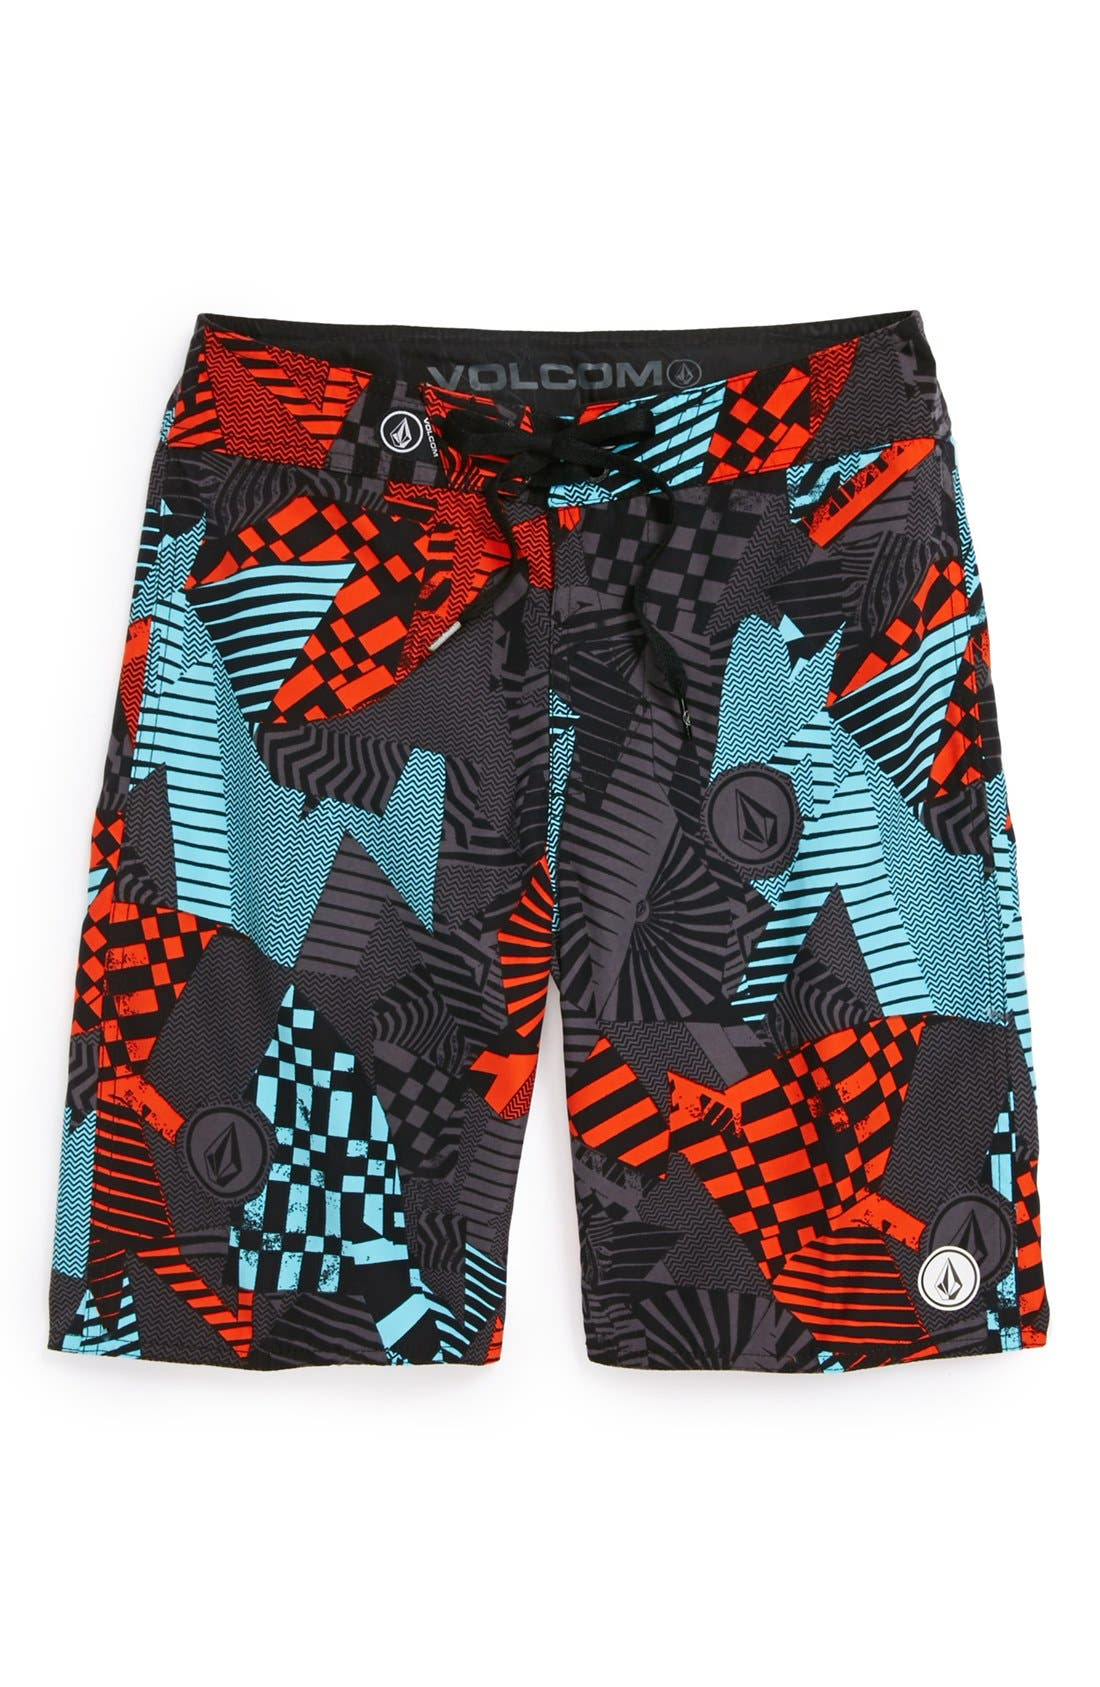 Alternate Image 1 Selected - Volcom 'Overpass St.' Board Shorts (Big Boys)